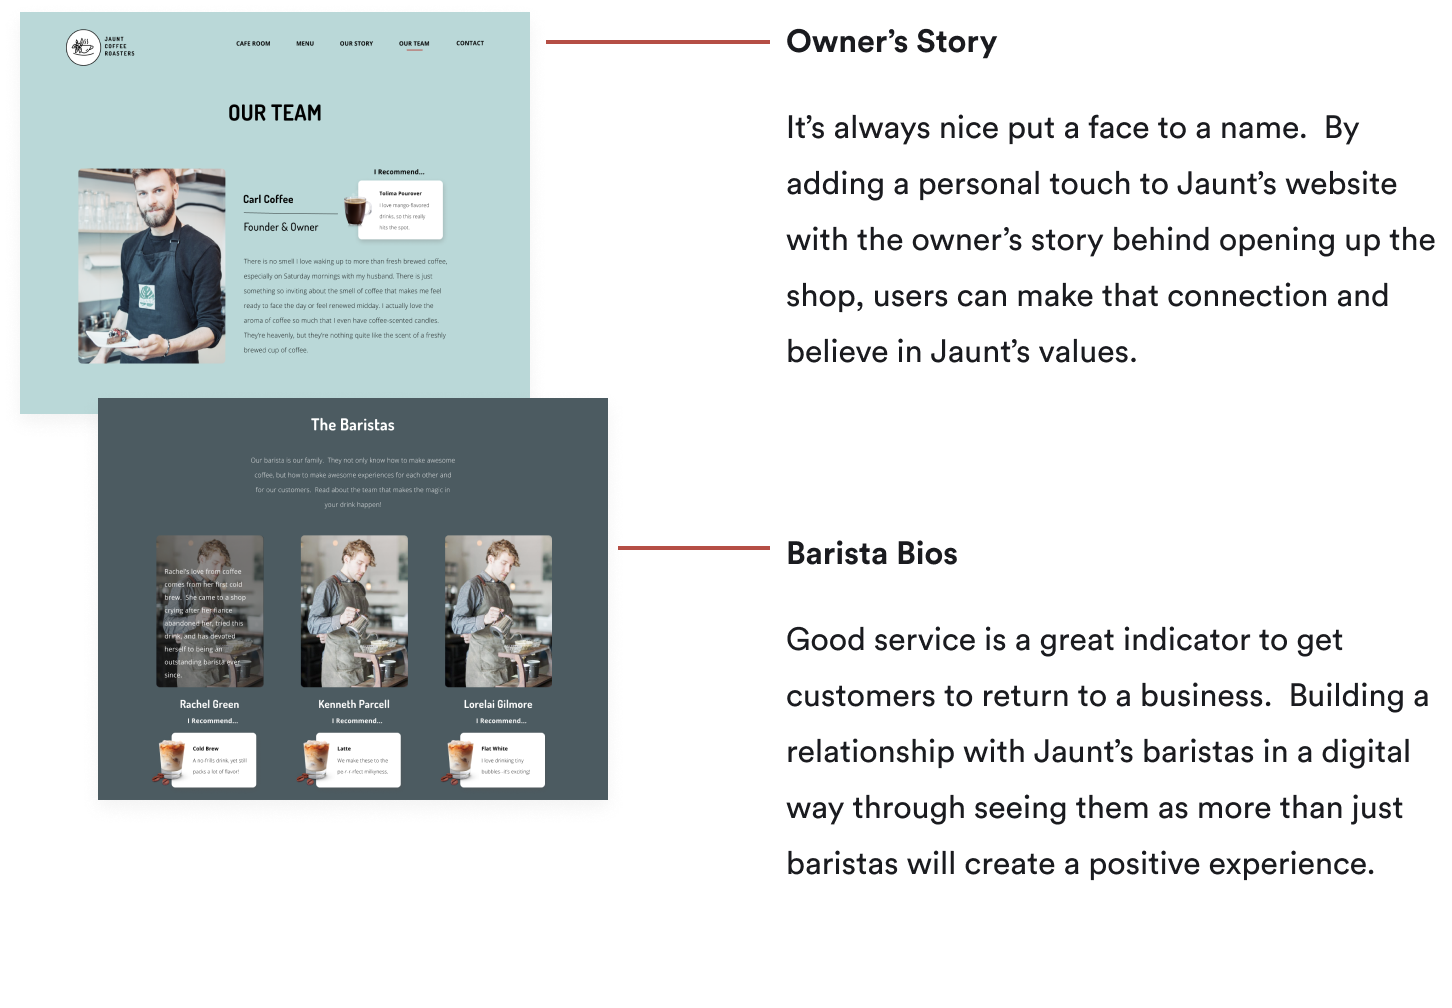 Picture of the Pages for Jaunt's Owner and Baristas